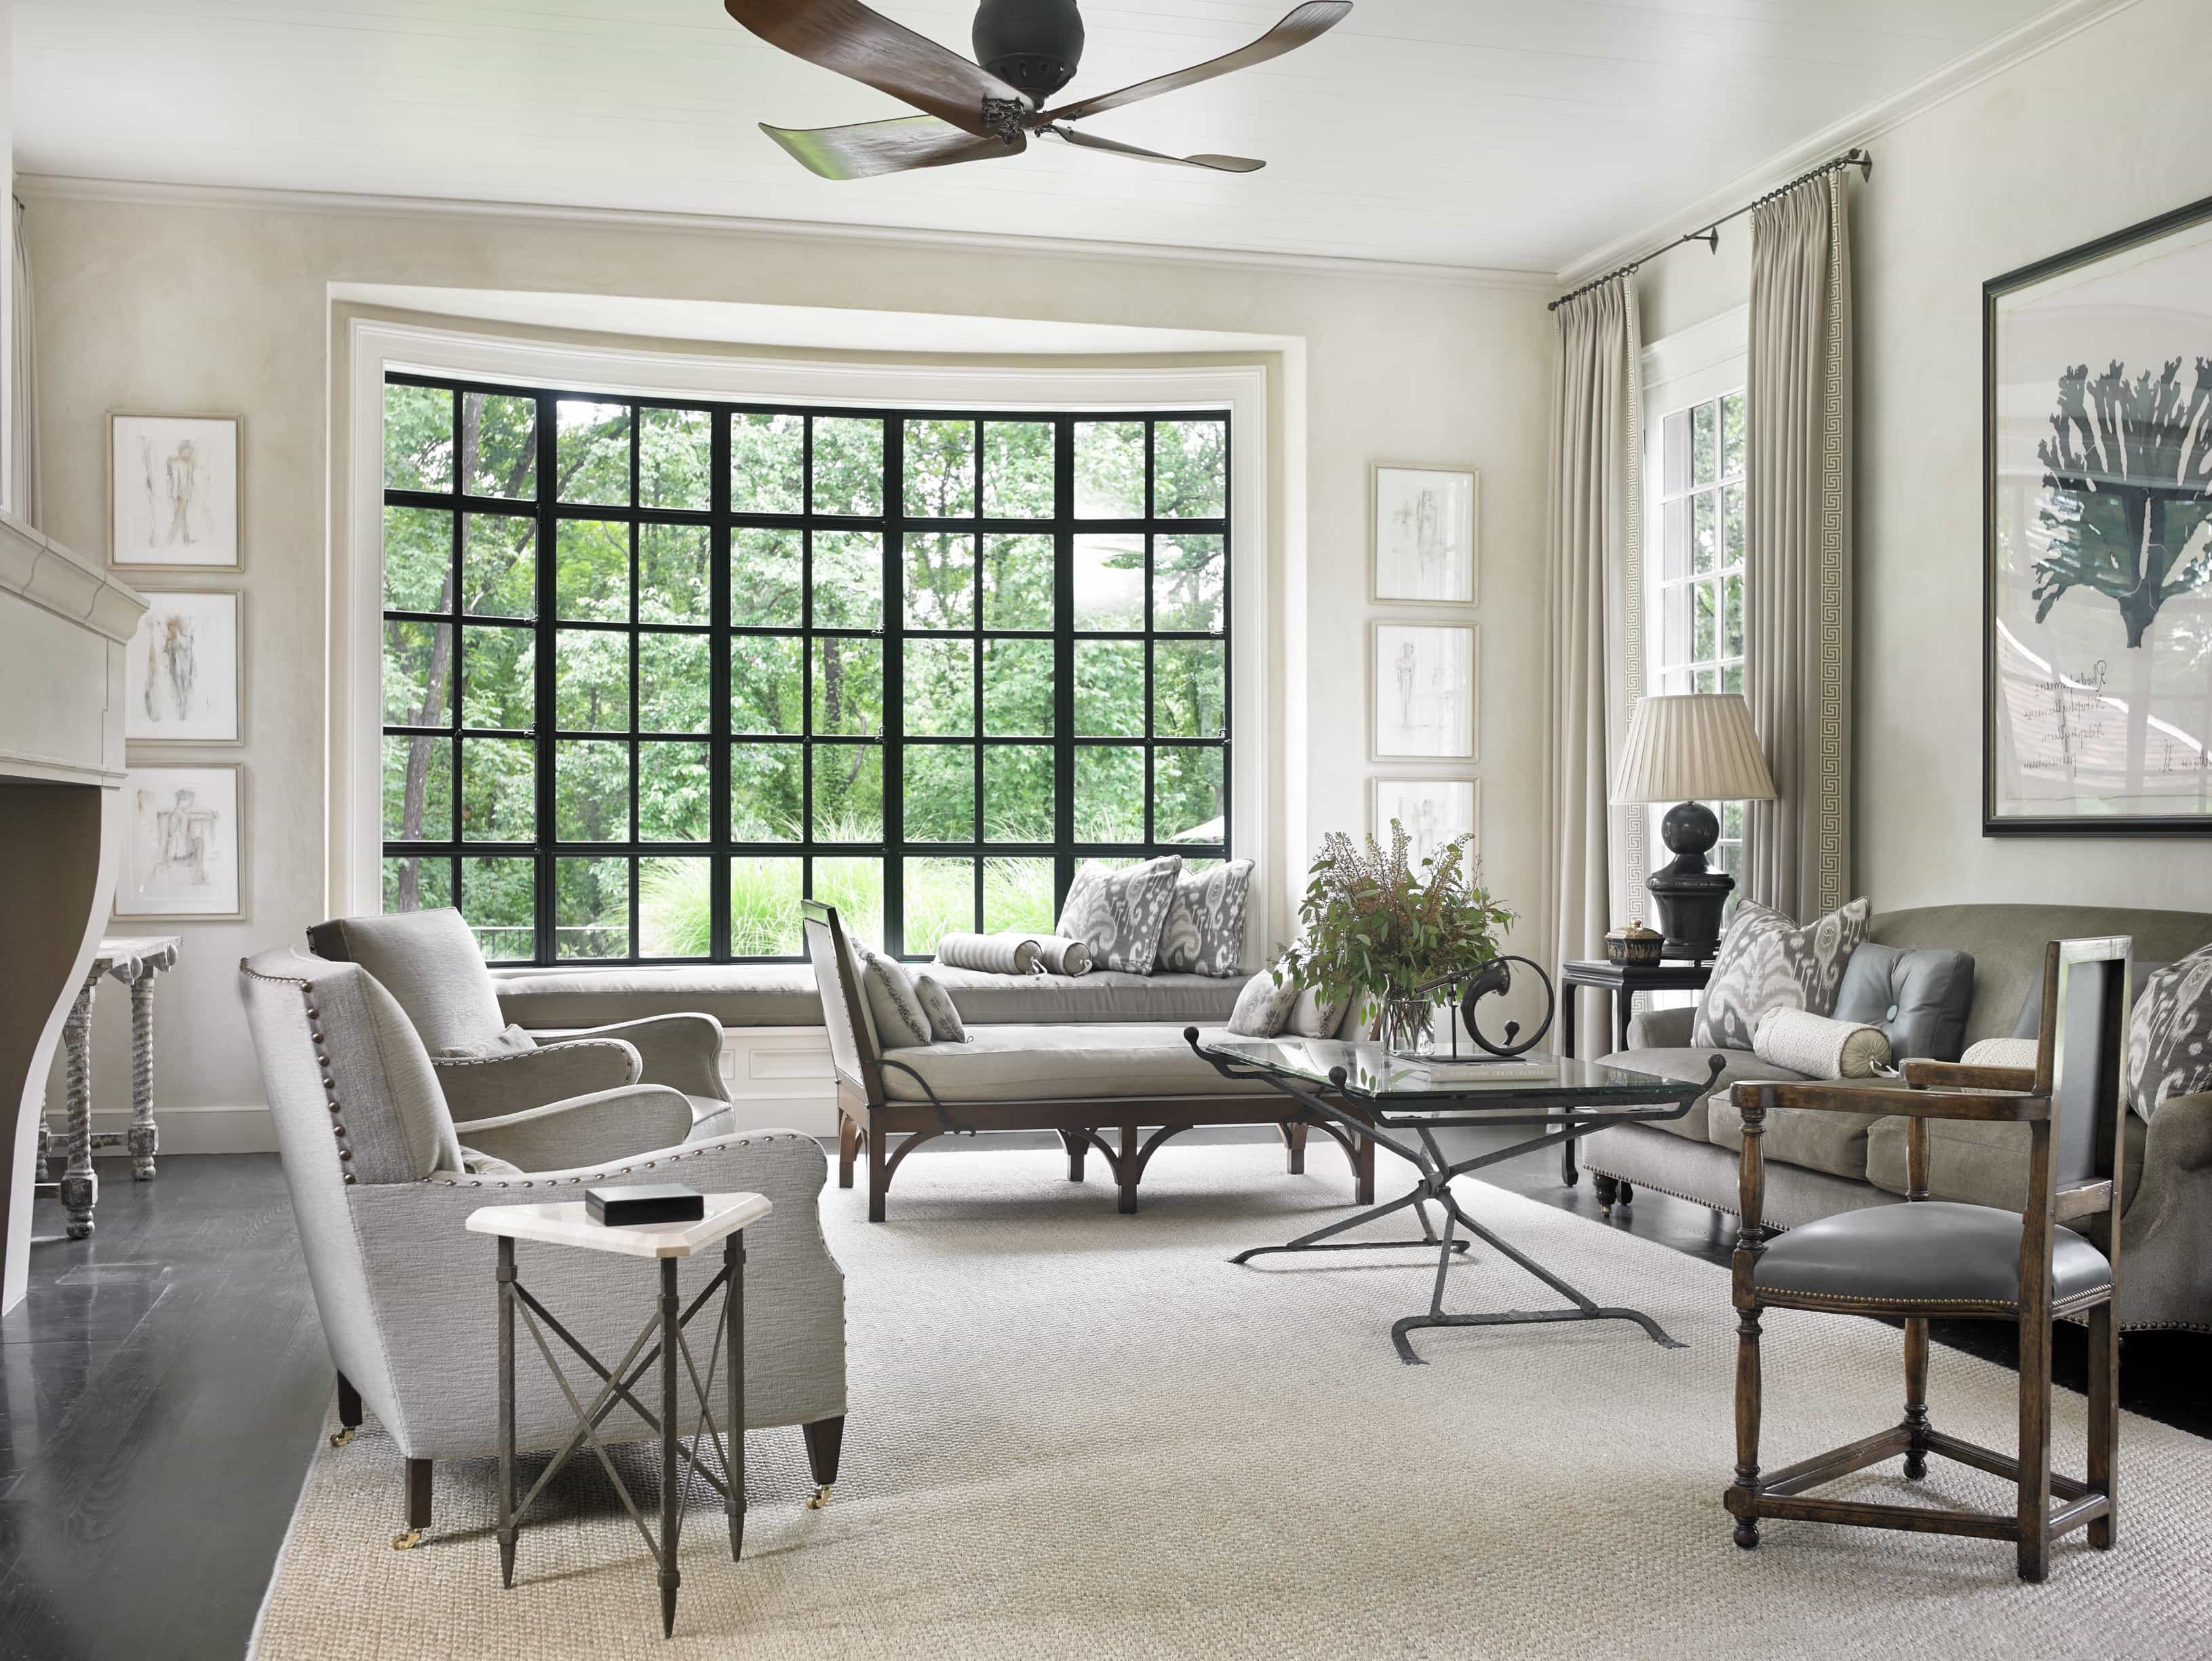 Featured Image of Contemporary Living Room With Large Bay Window And Upholstered Furniture